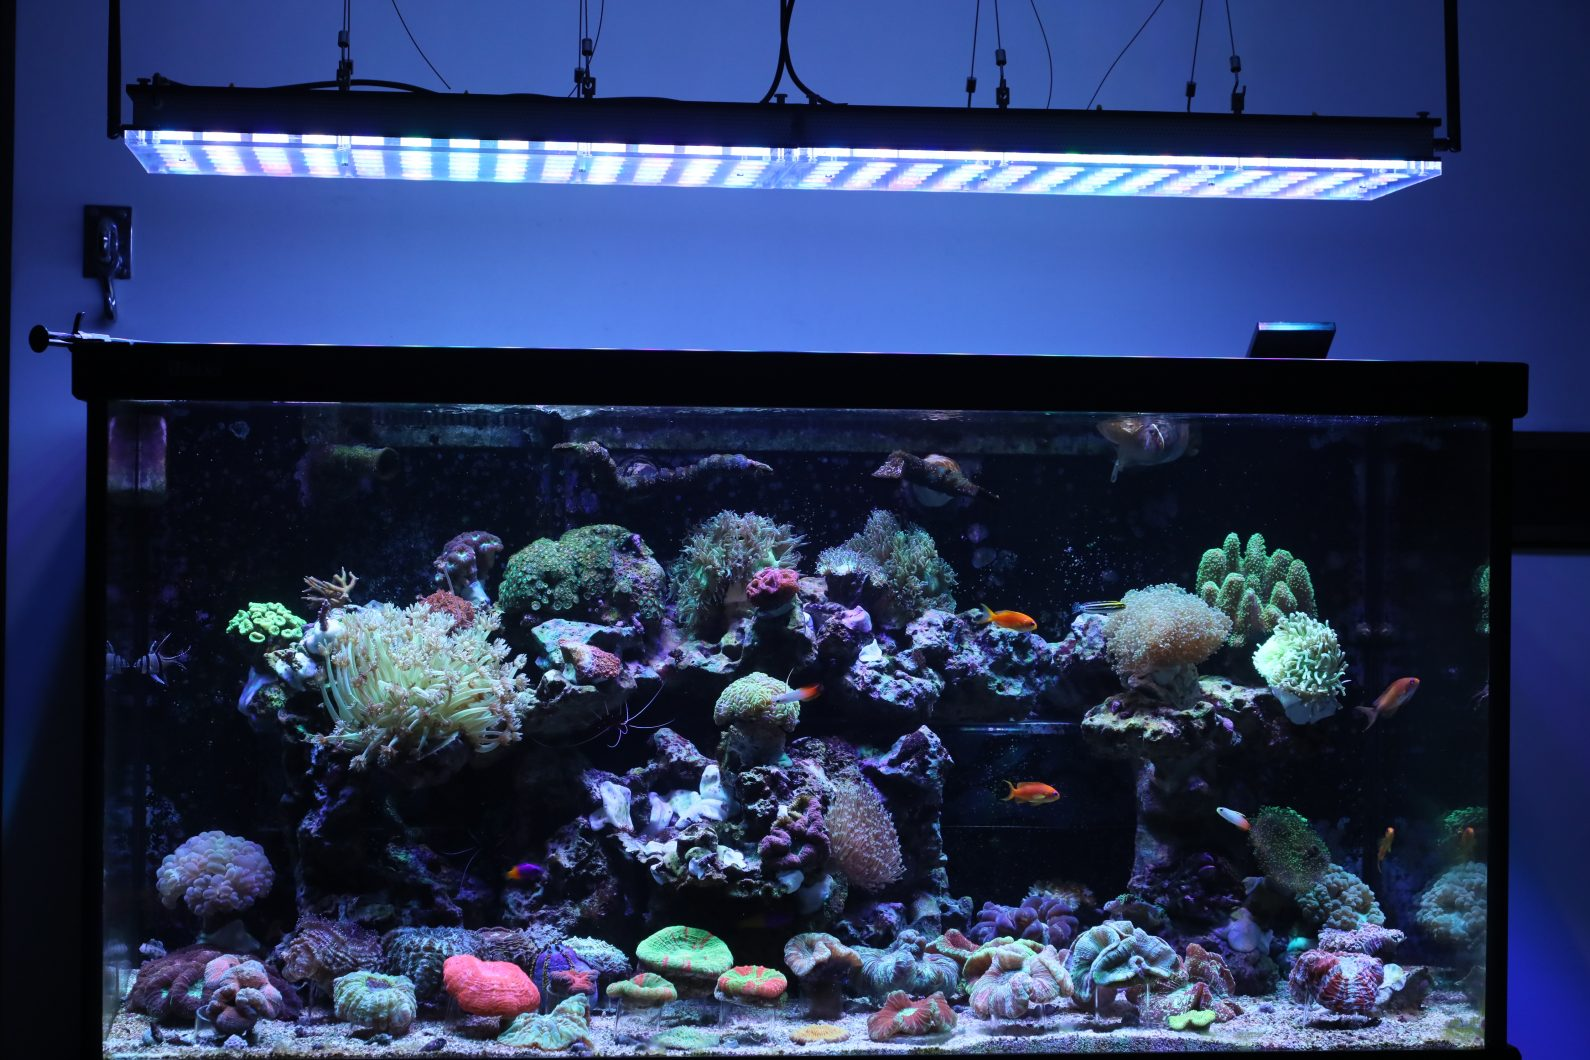 Orphek_Reef_Aquarium_LED_Light_Atlantik_v4_best_LED_Aquarium_lighting7